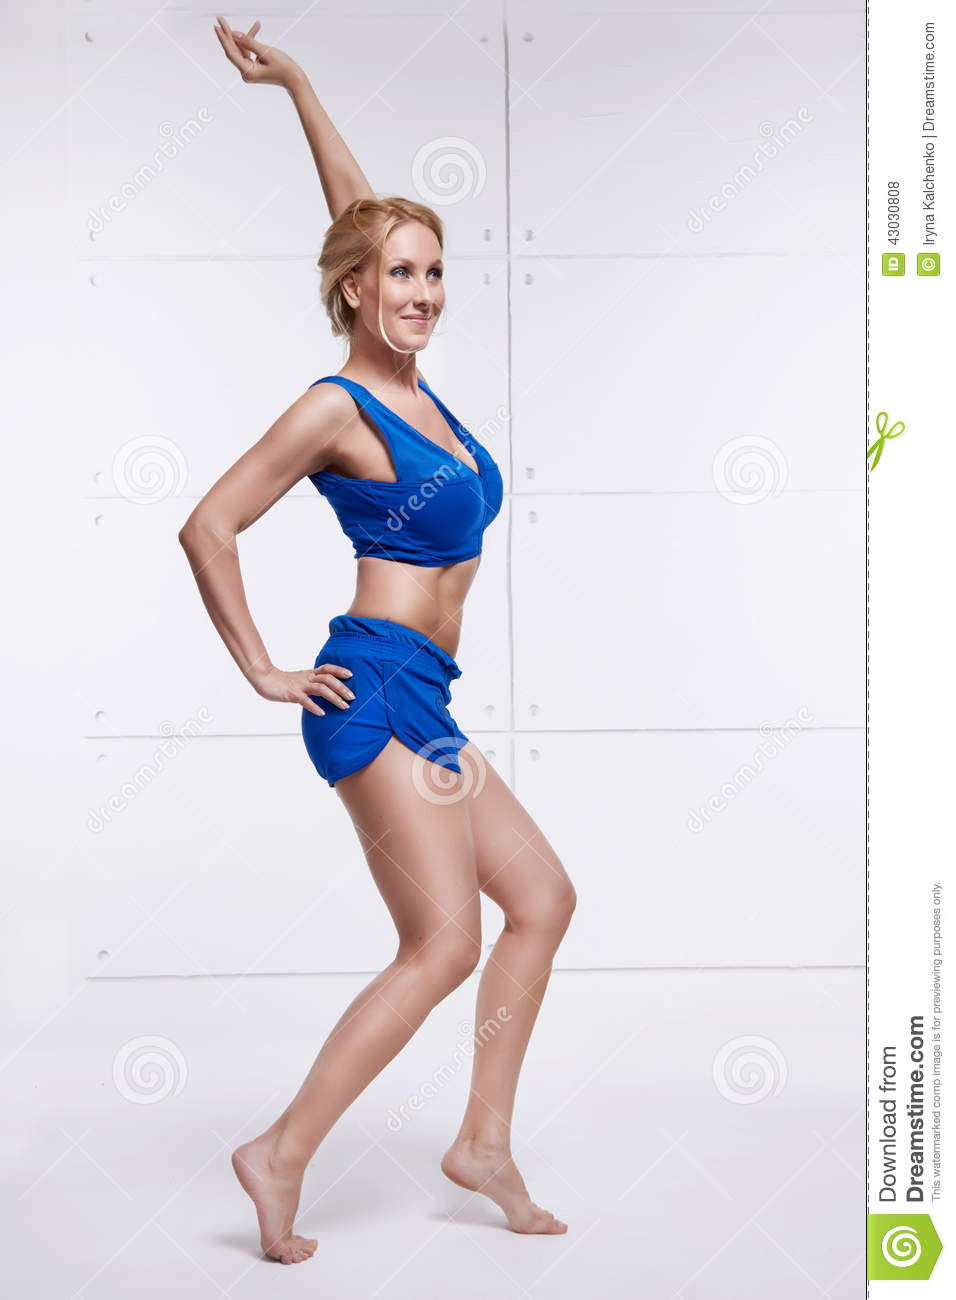 Beautiful blonde perfect athletic slim figure engaged in yoga, exercise or fitness, lead a healthy lifestyle, and eats r